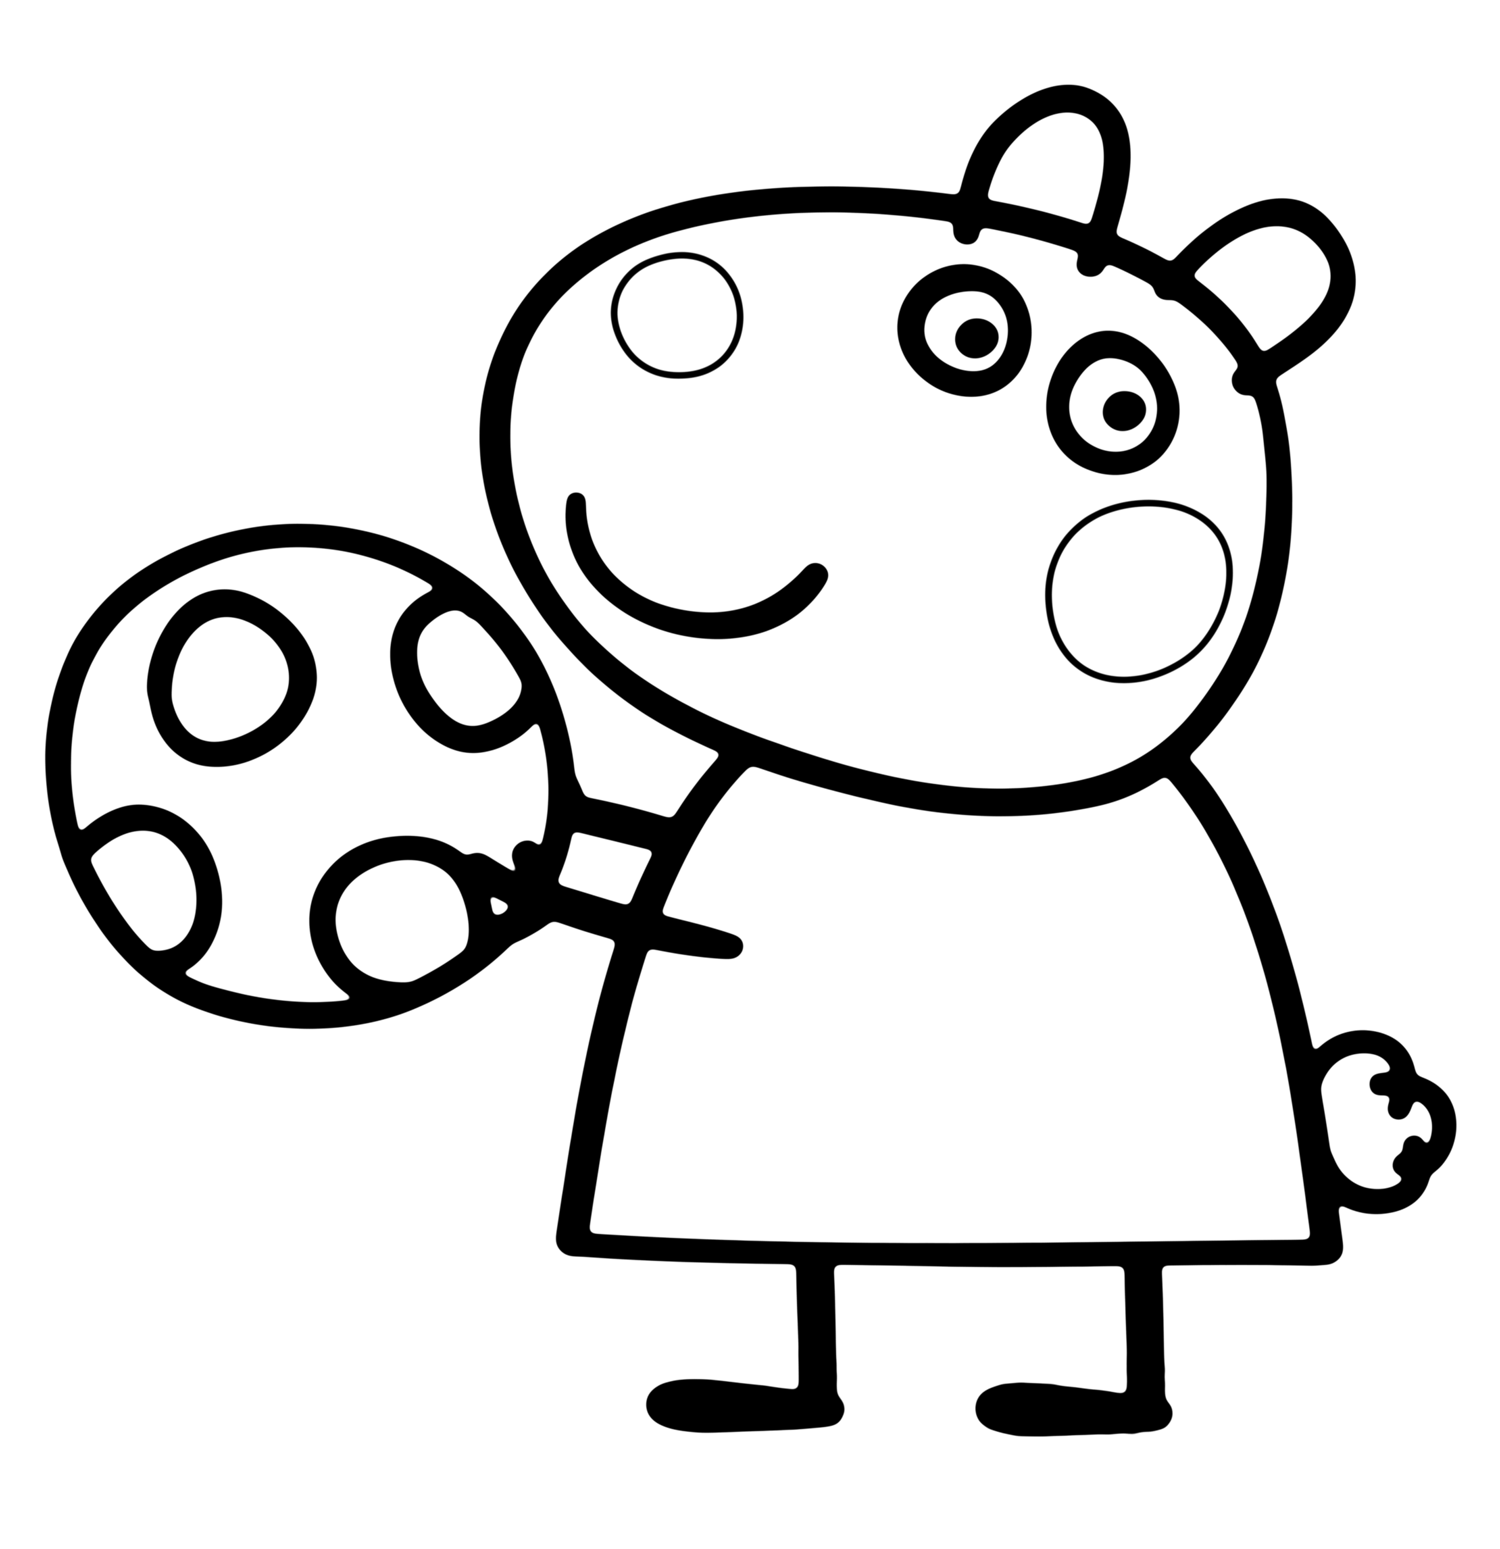 Suzy sheep peppa pig coloring pages sketch coloring page for Coloring pages peppa pig